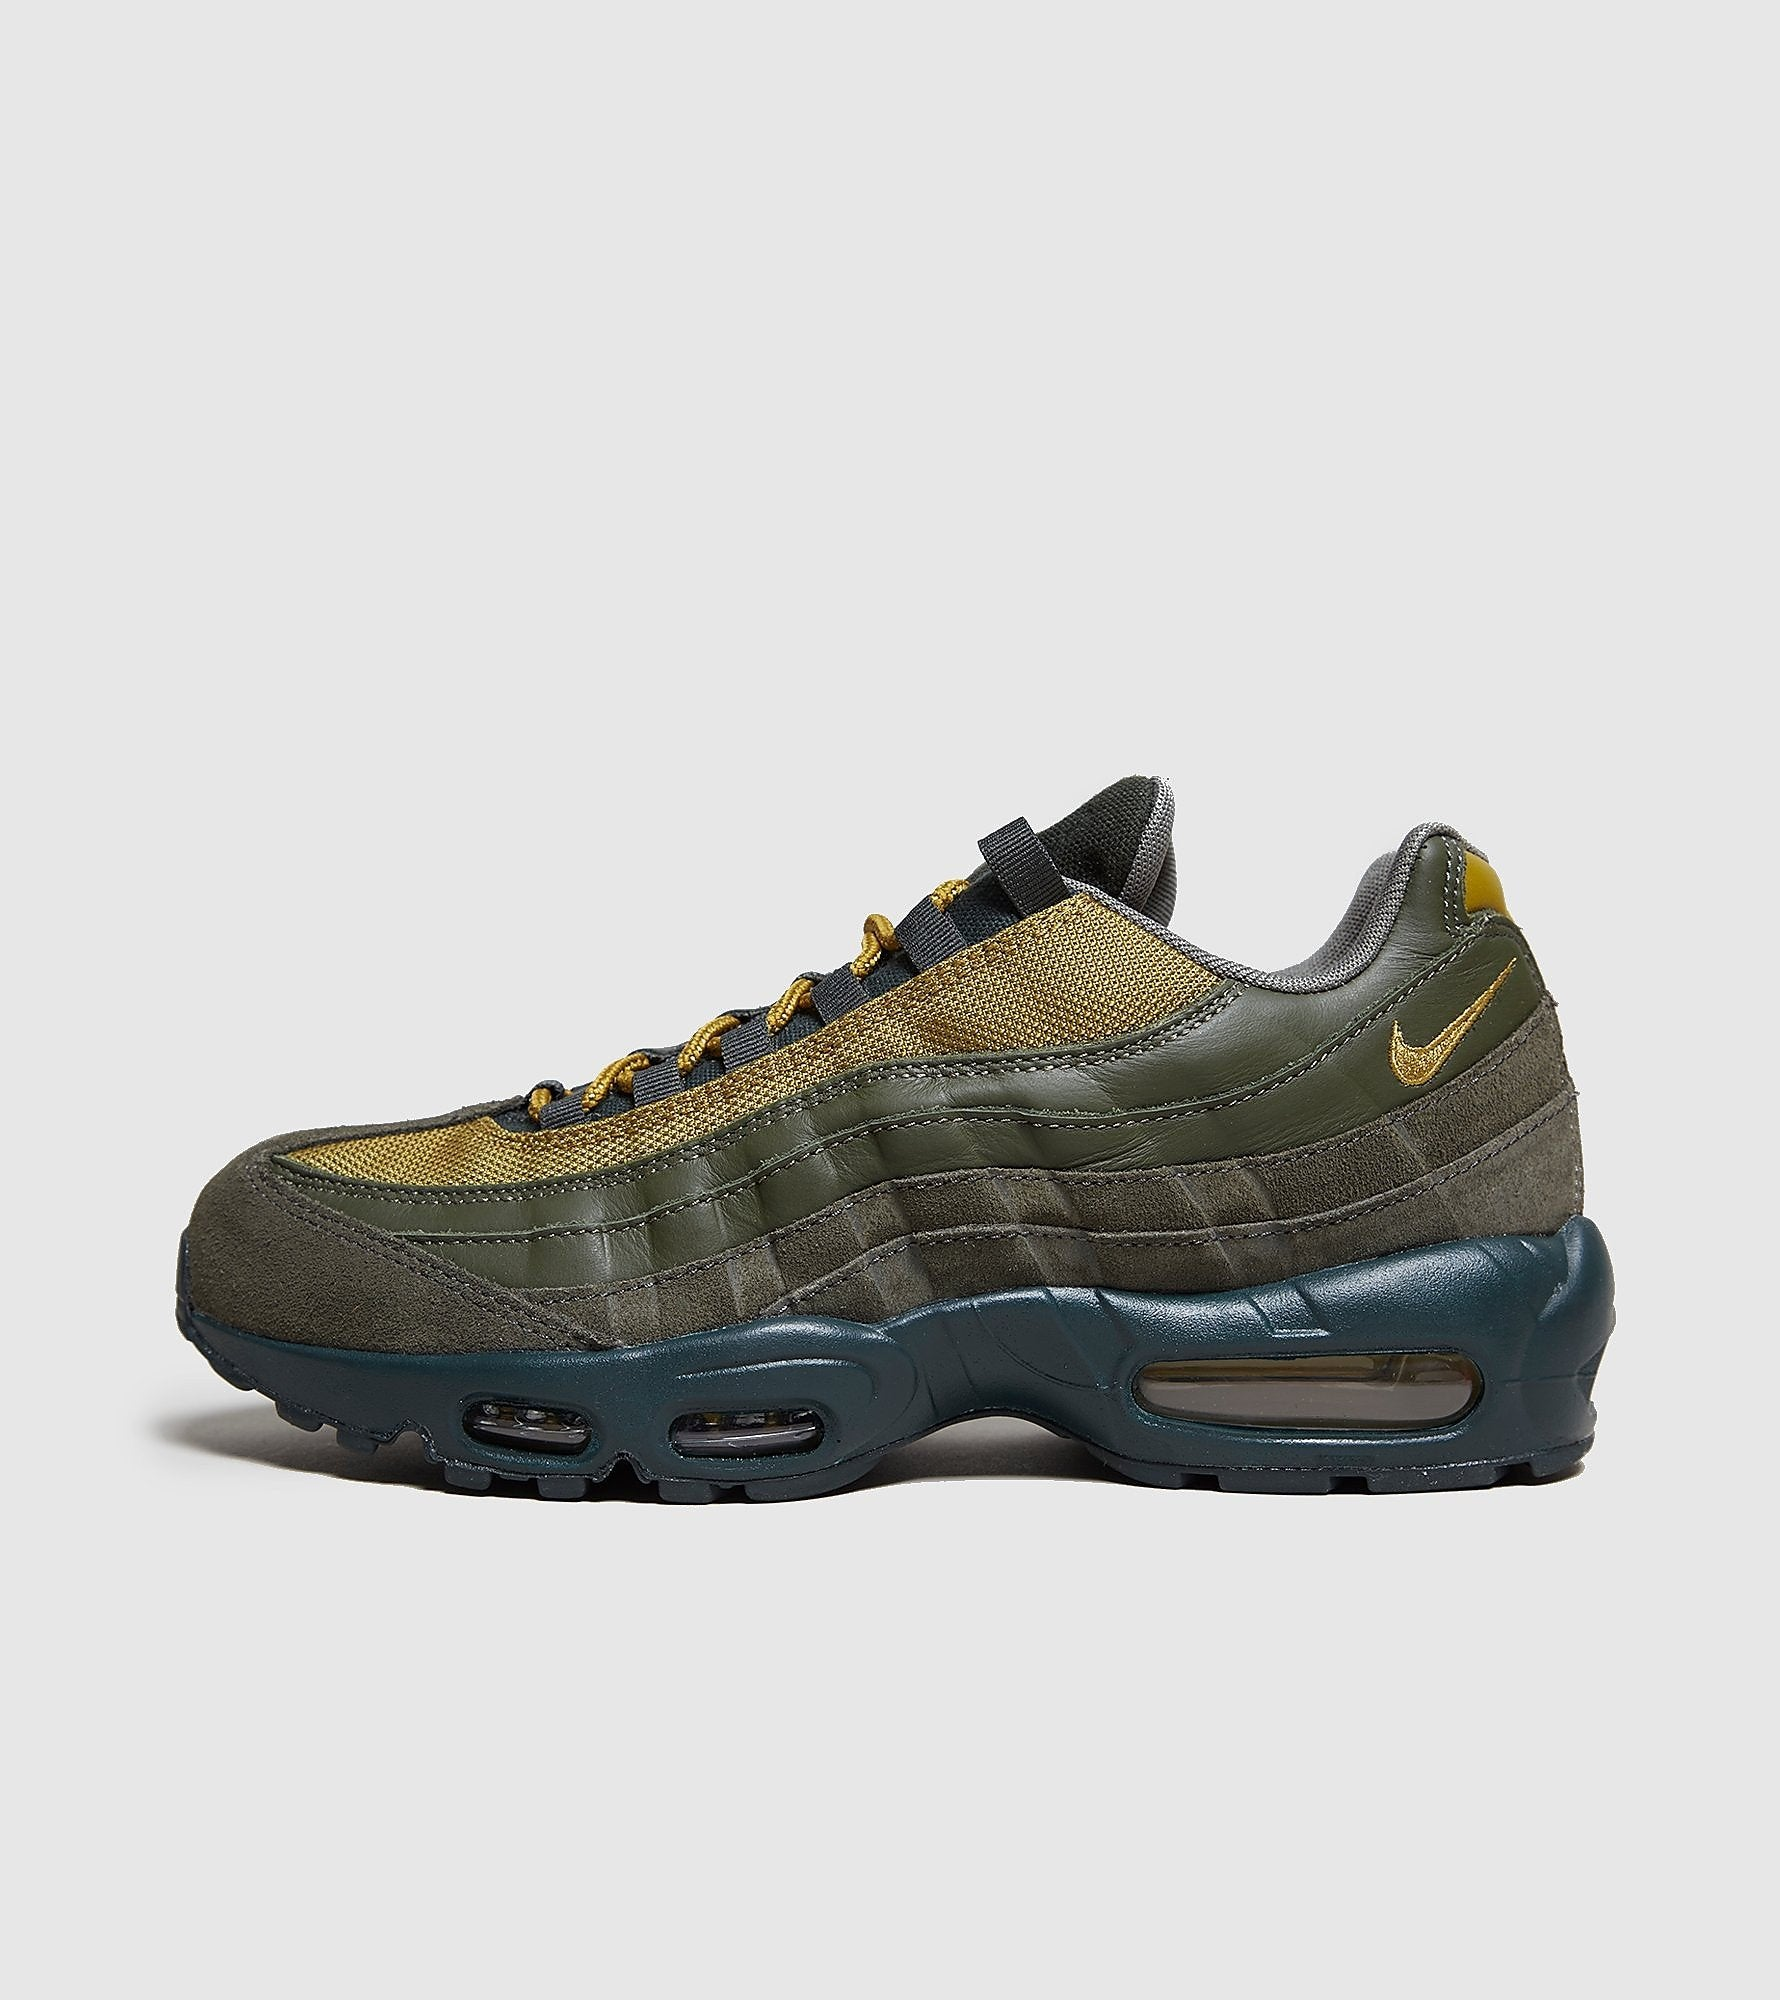 quality design 03f17 4f8b7 Nike Nike Air Max 95, Green/Yellow at Soleheaven Curated Collections